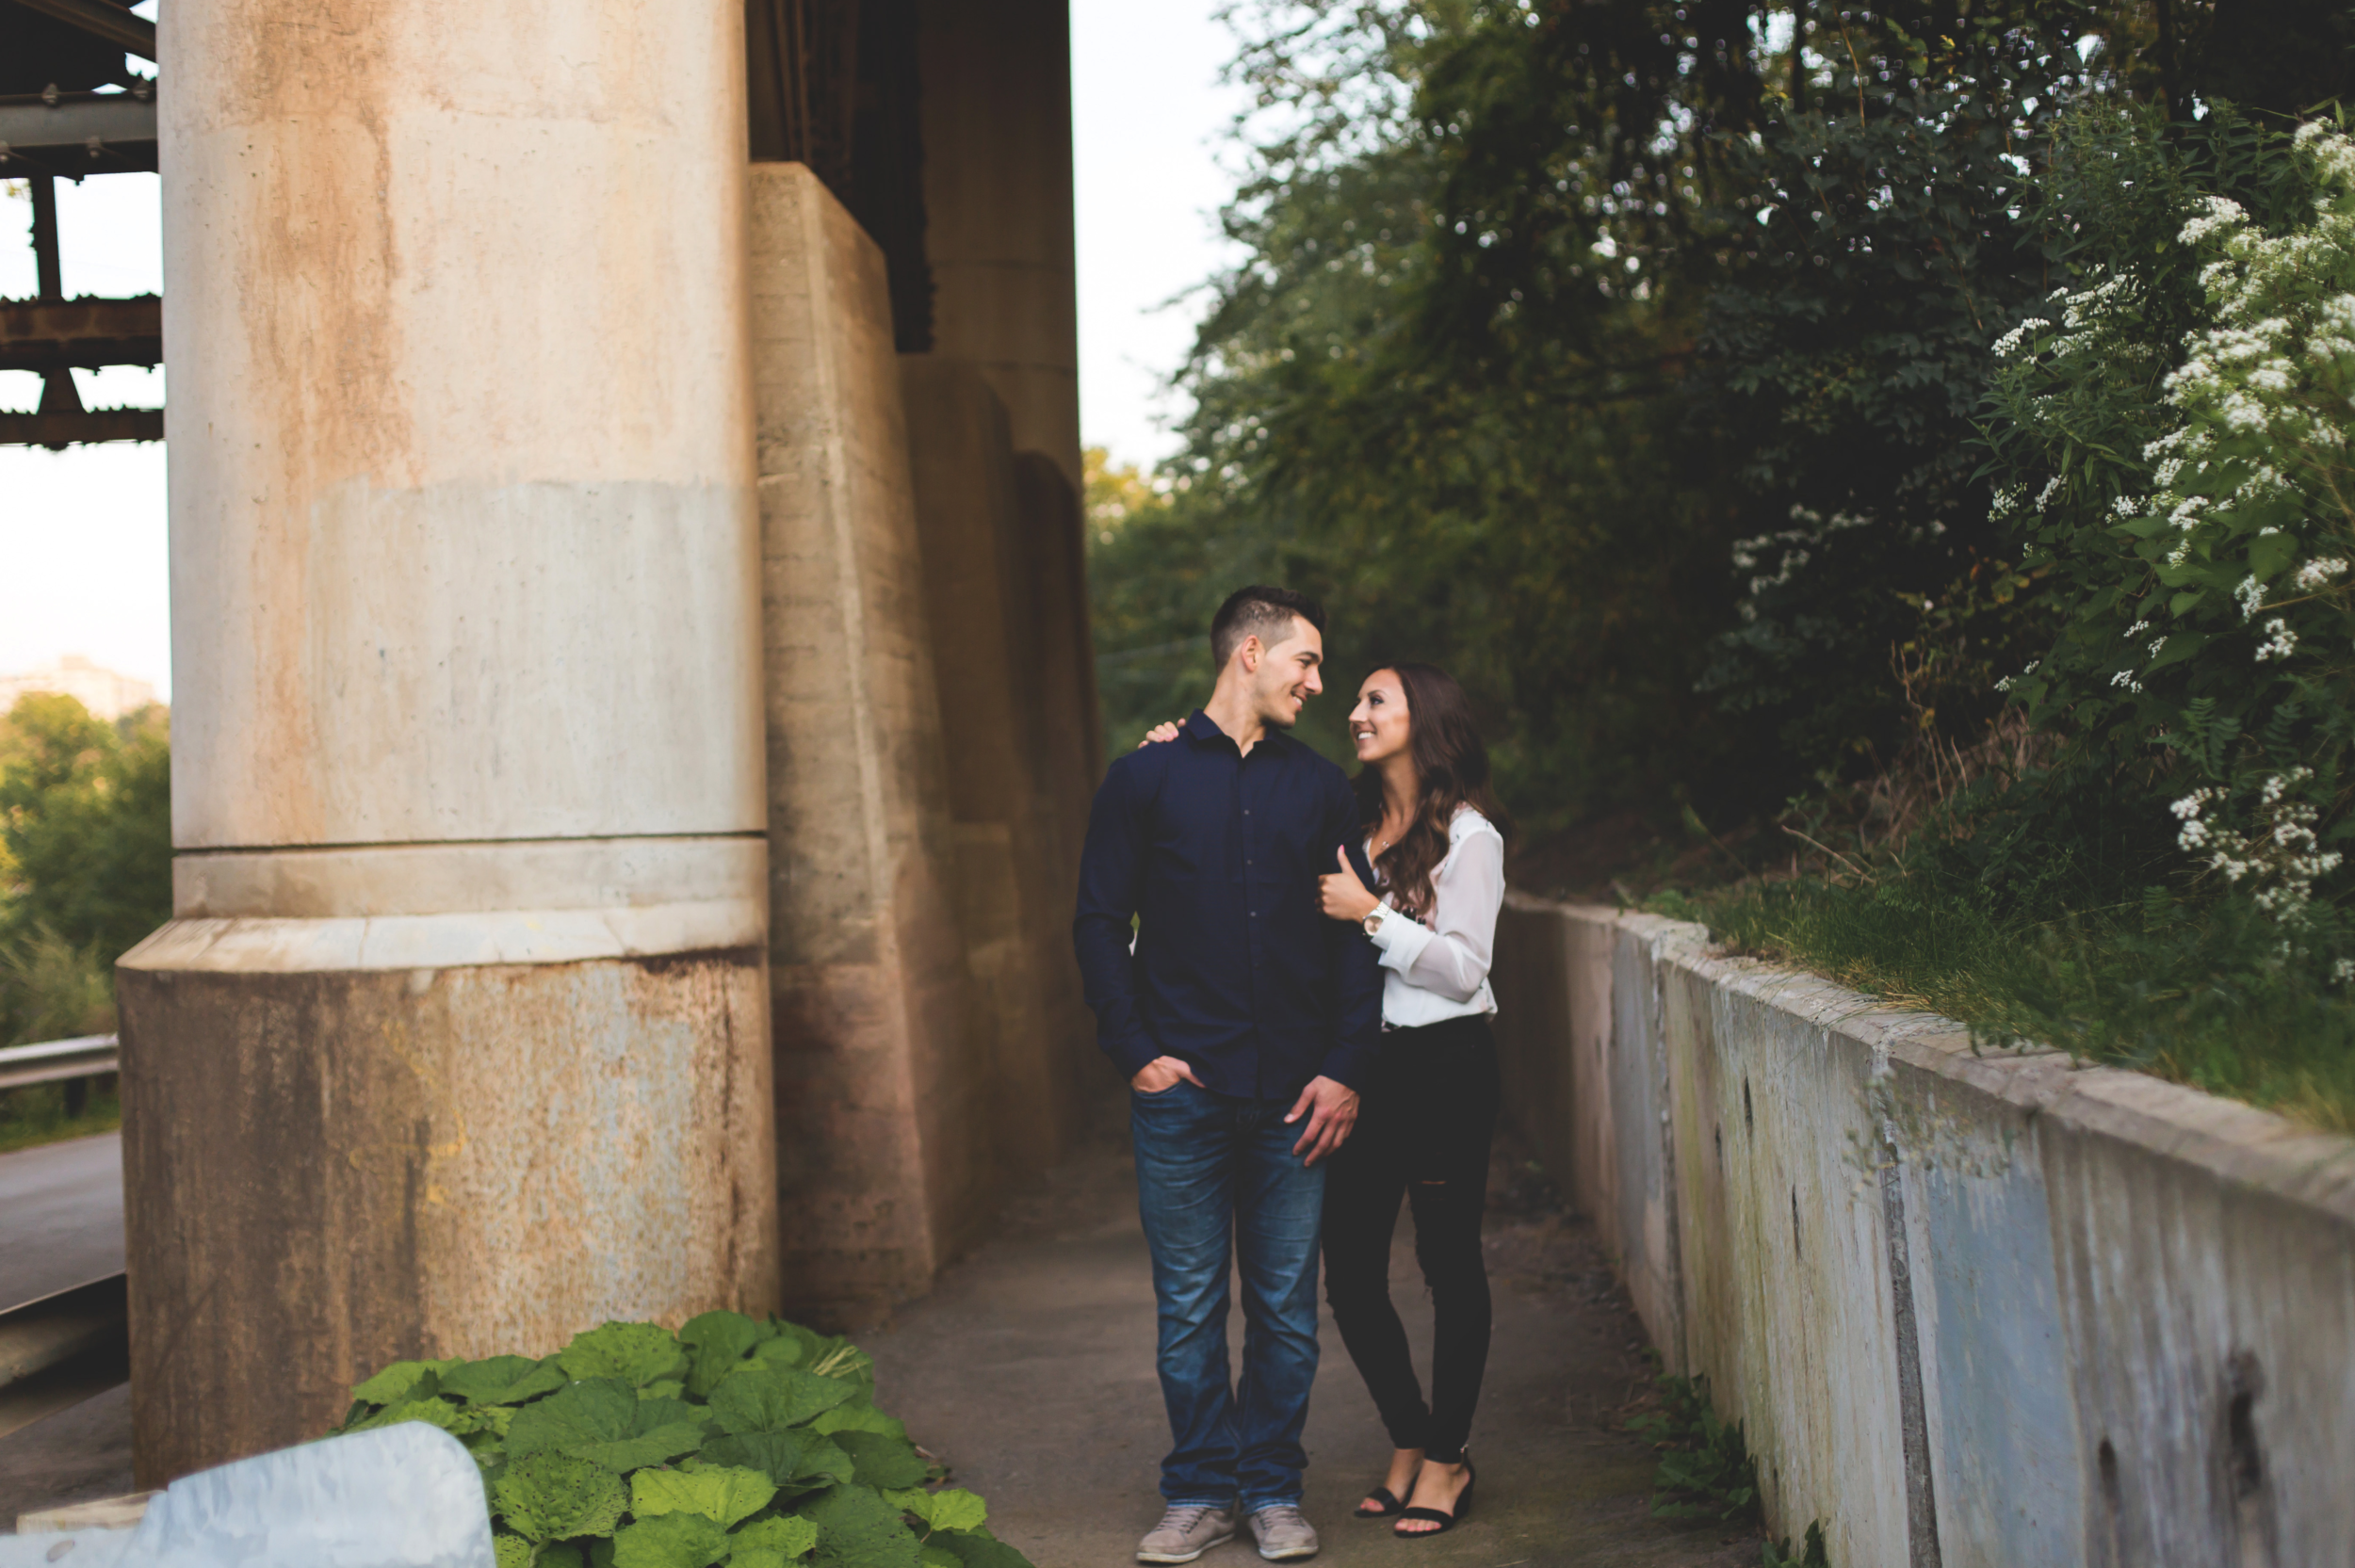 Engagement-Session-Hamilton-Burlington-Oakville-Toronto-Niagara-Wedding-Photographer-Engaged-Photography-Session-HamOnt-Moments-by-Lauren-Photo-Image-21.png